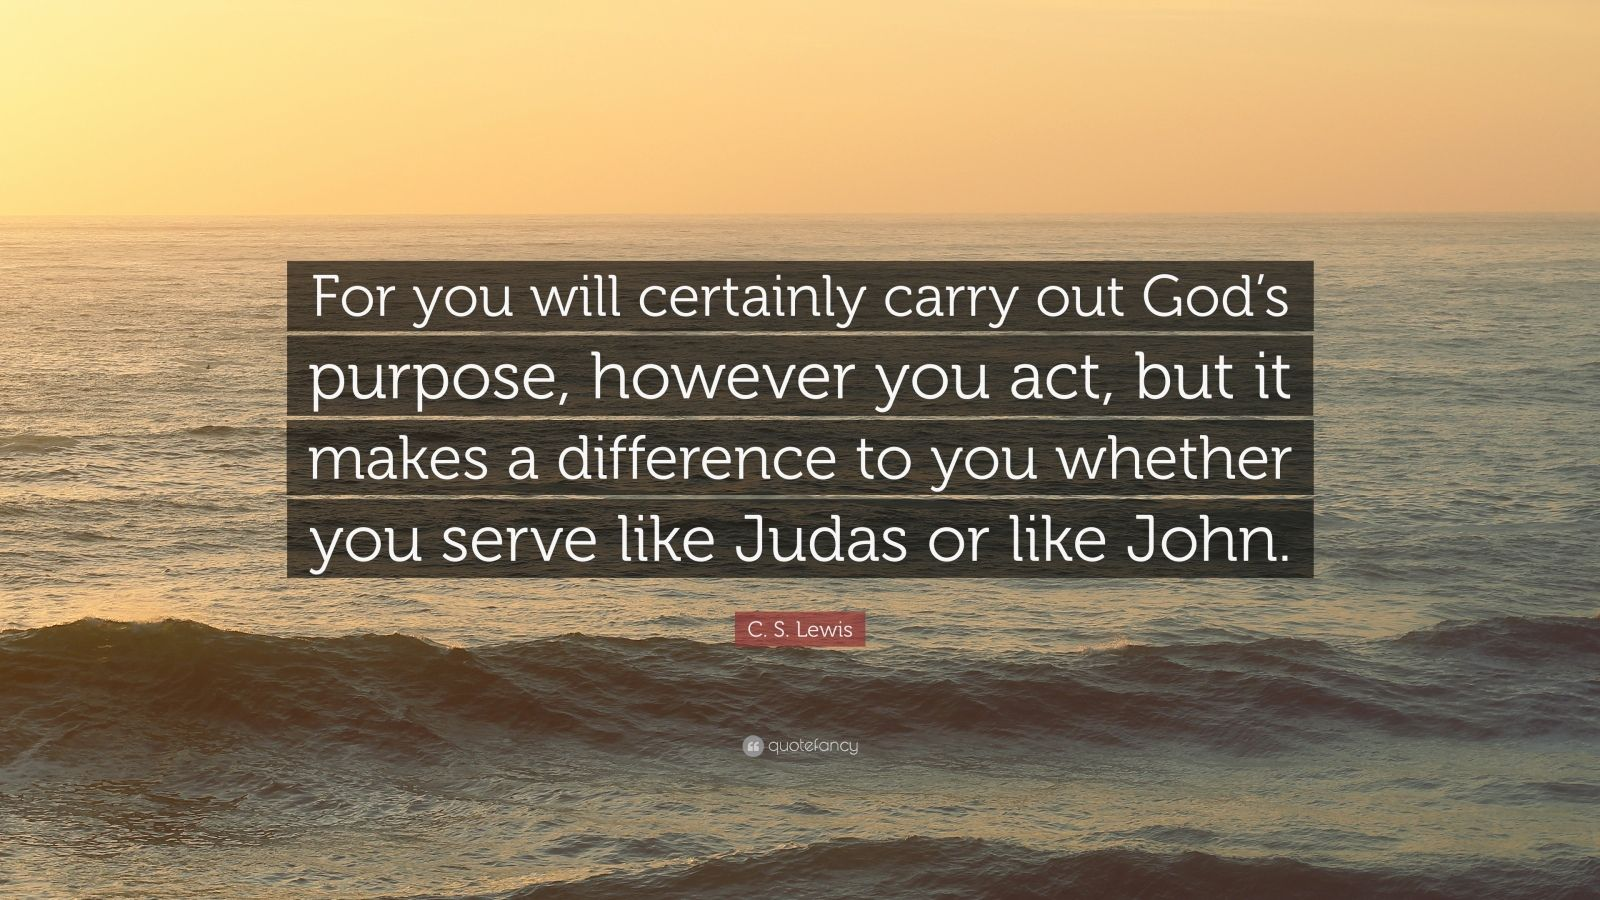 "C. S. Lewis Quote: ""For you will certainly carry out God's purpose, however you act, but it makes a difference to you whether you serve like Judas or like John."""